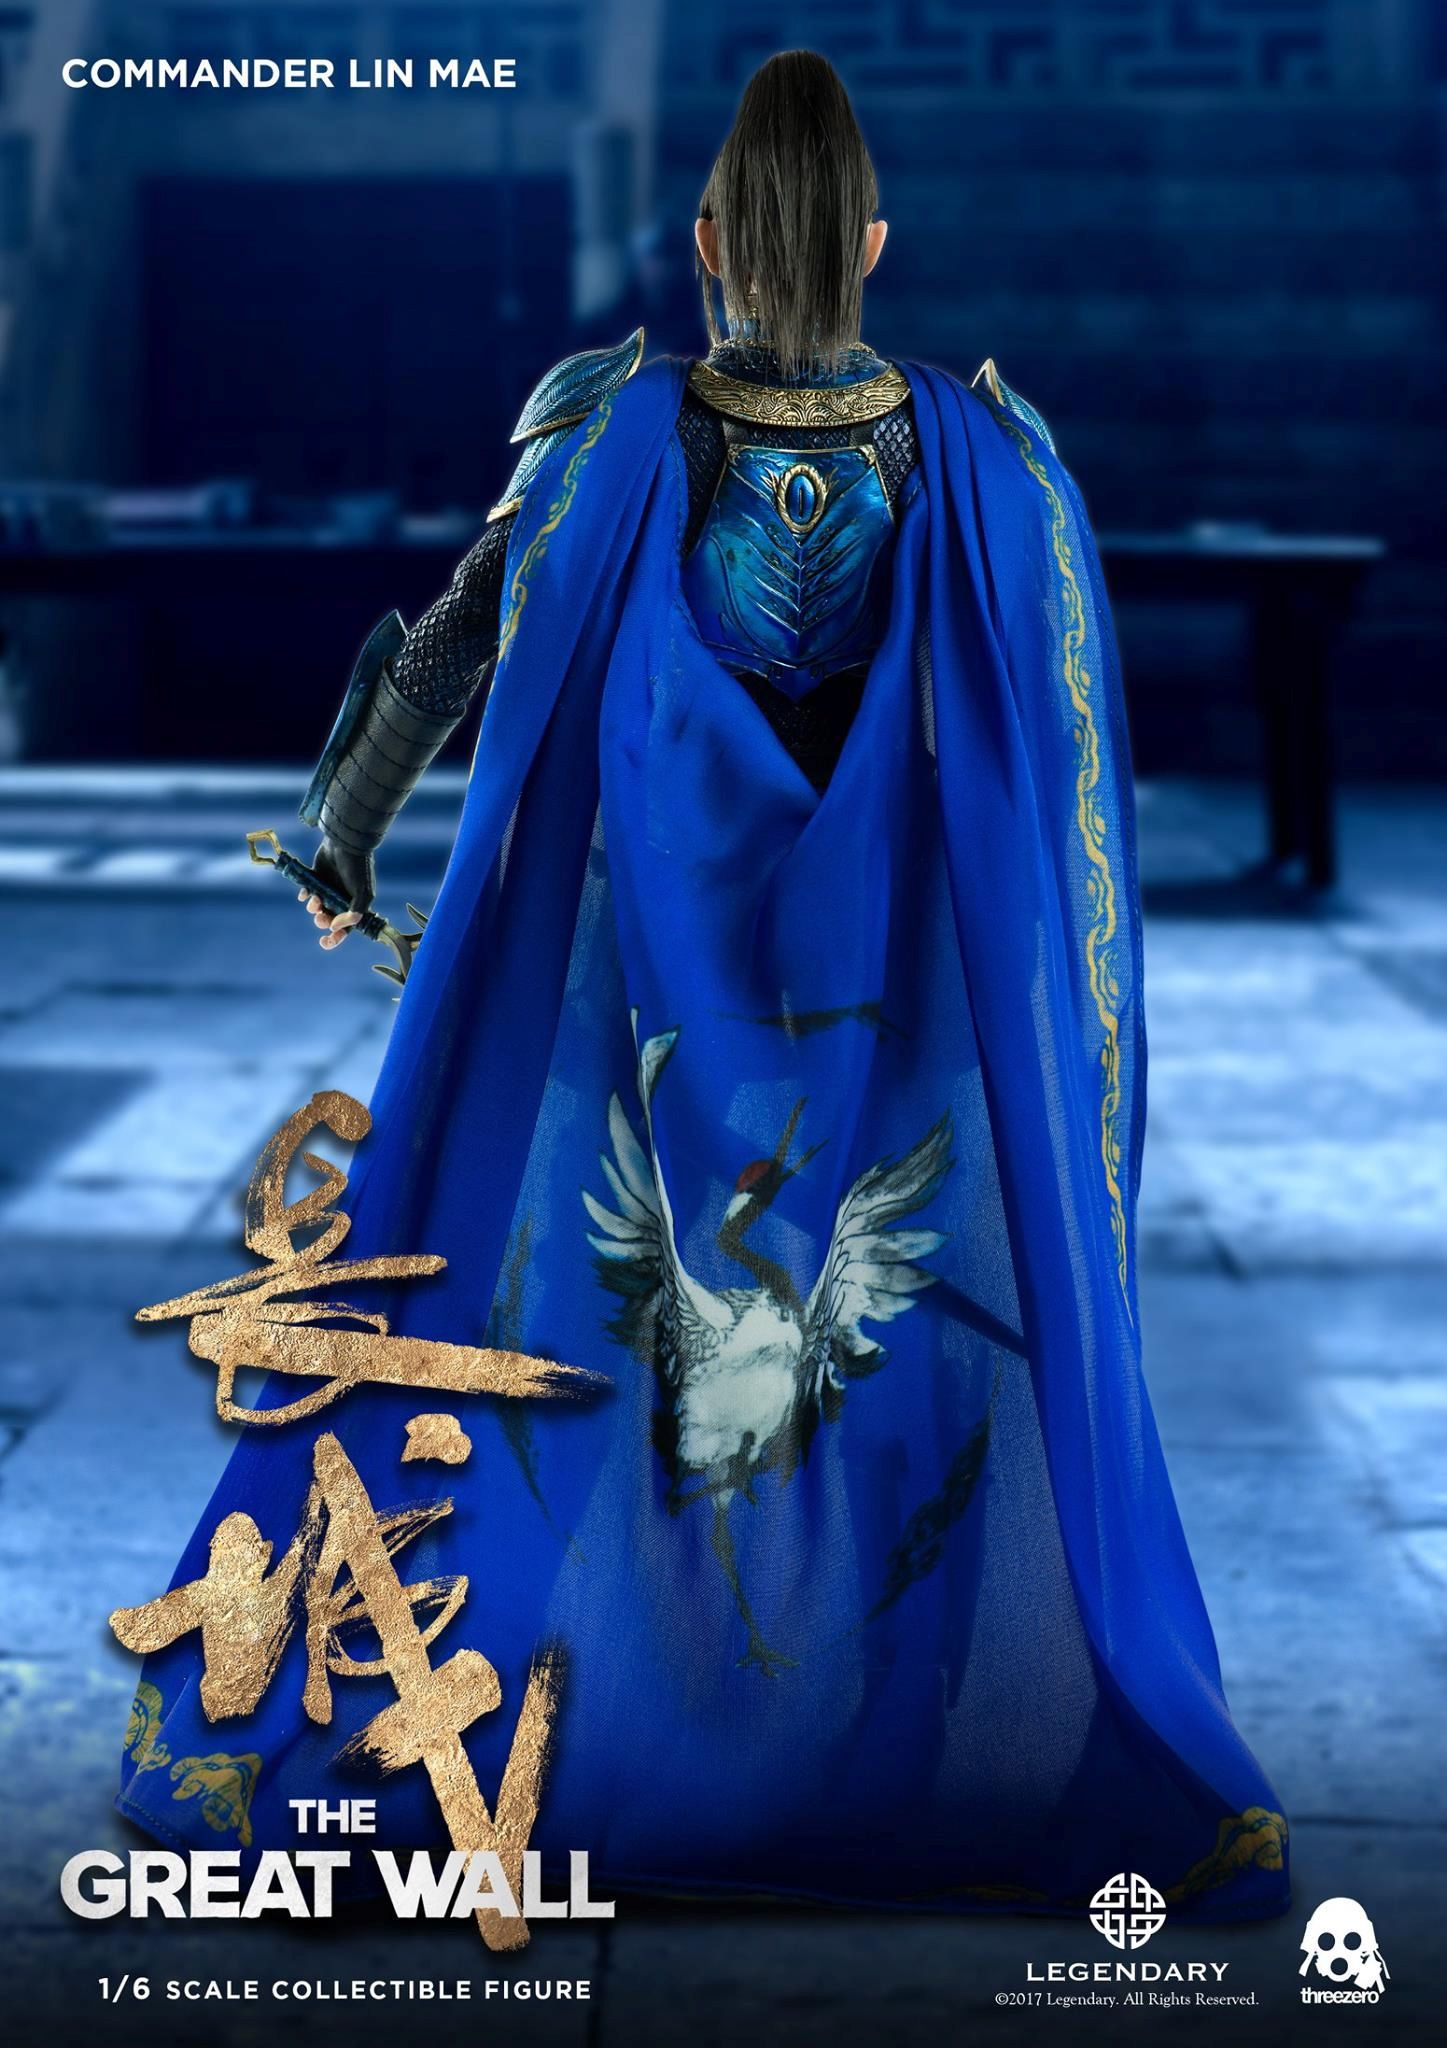 Lin-Mae-The-Great-Wall-Collectible-Action-Figure-10